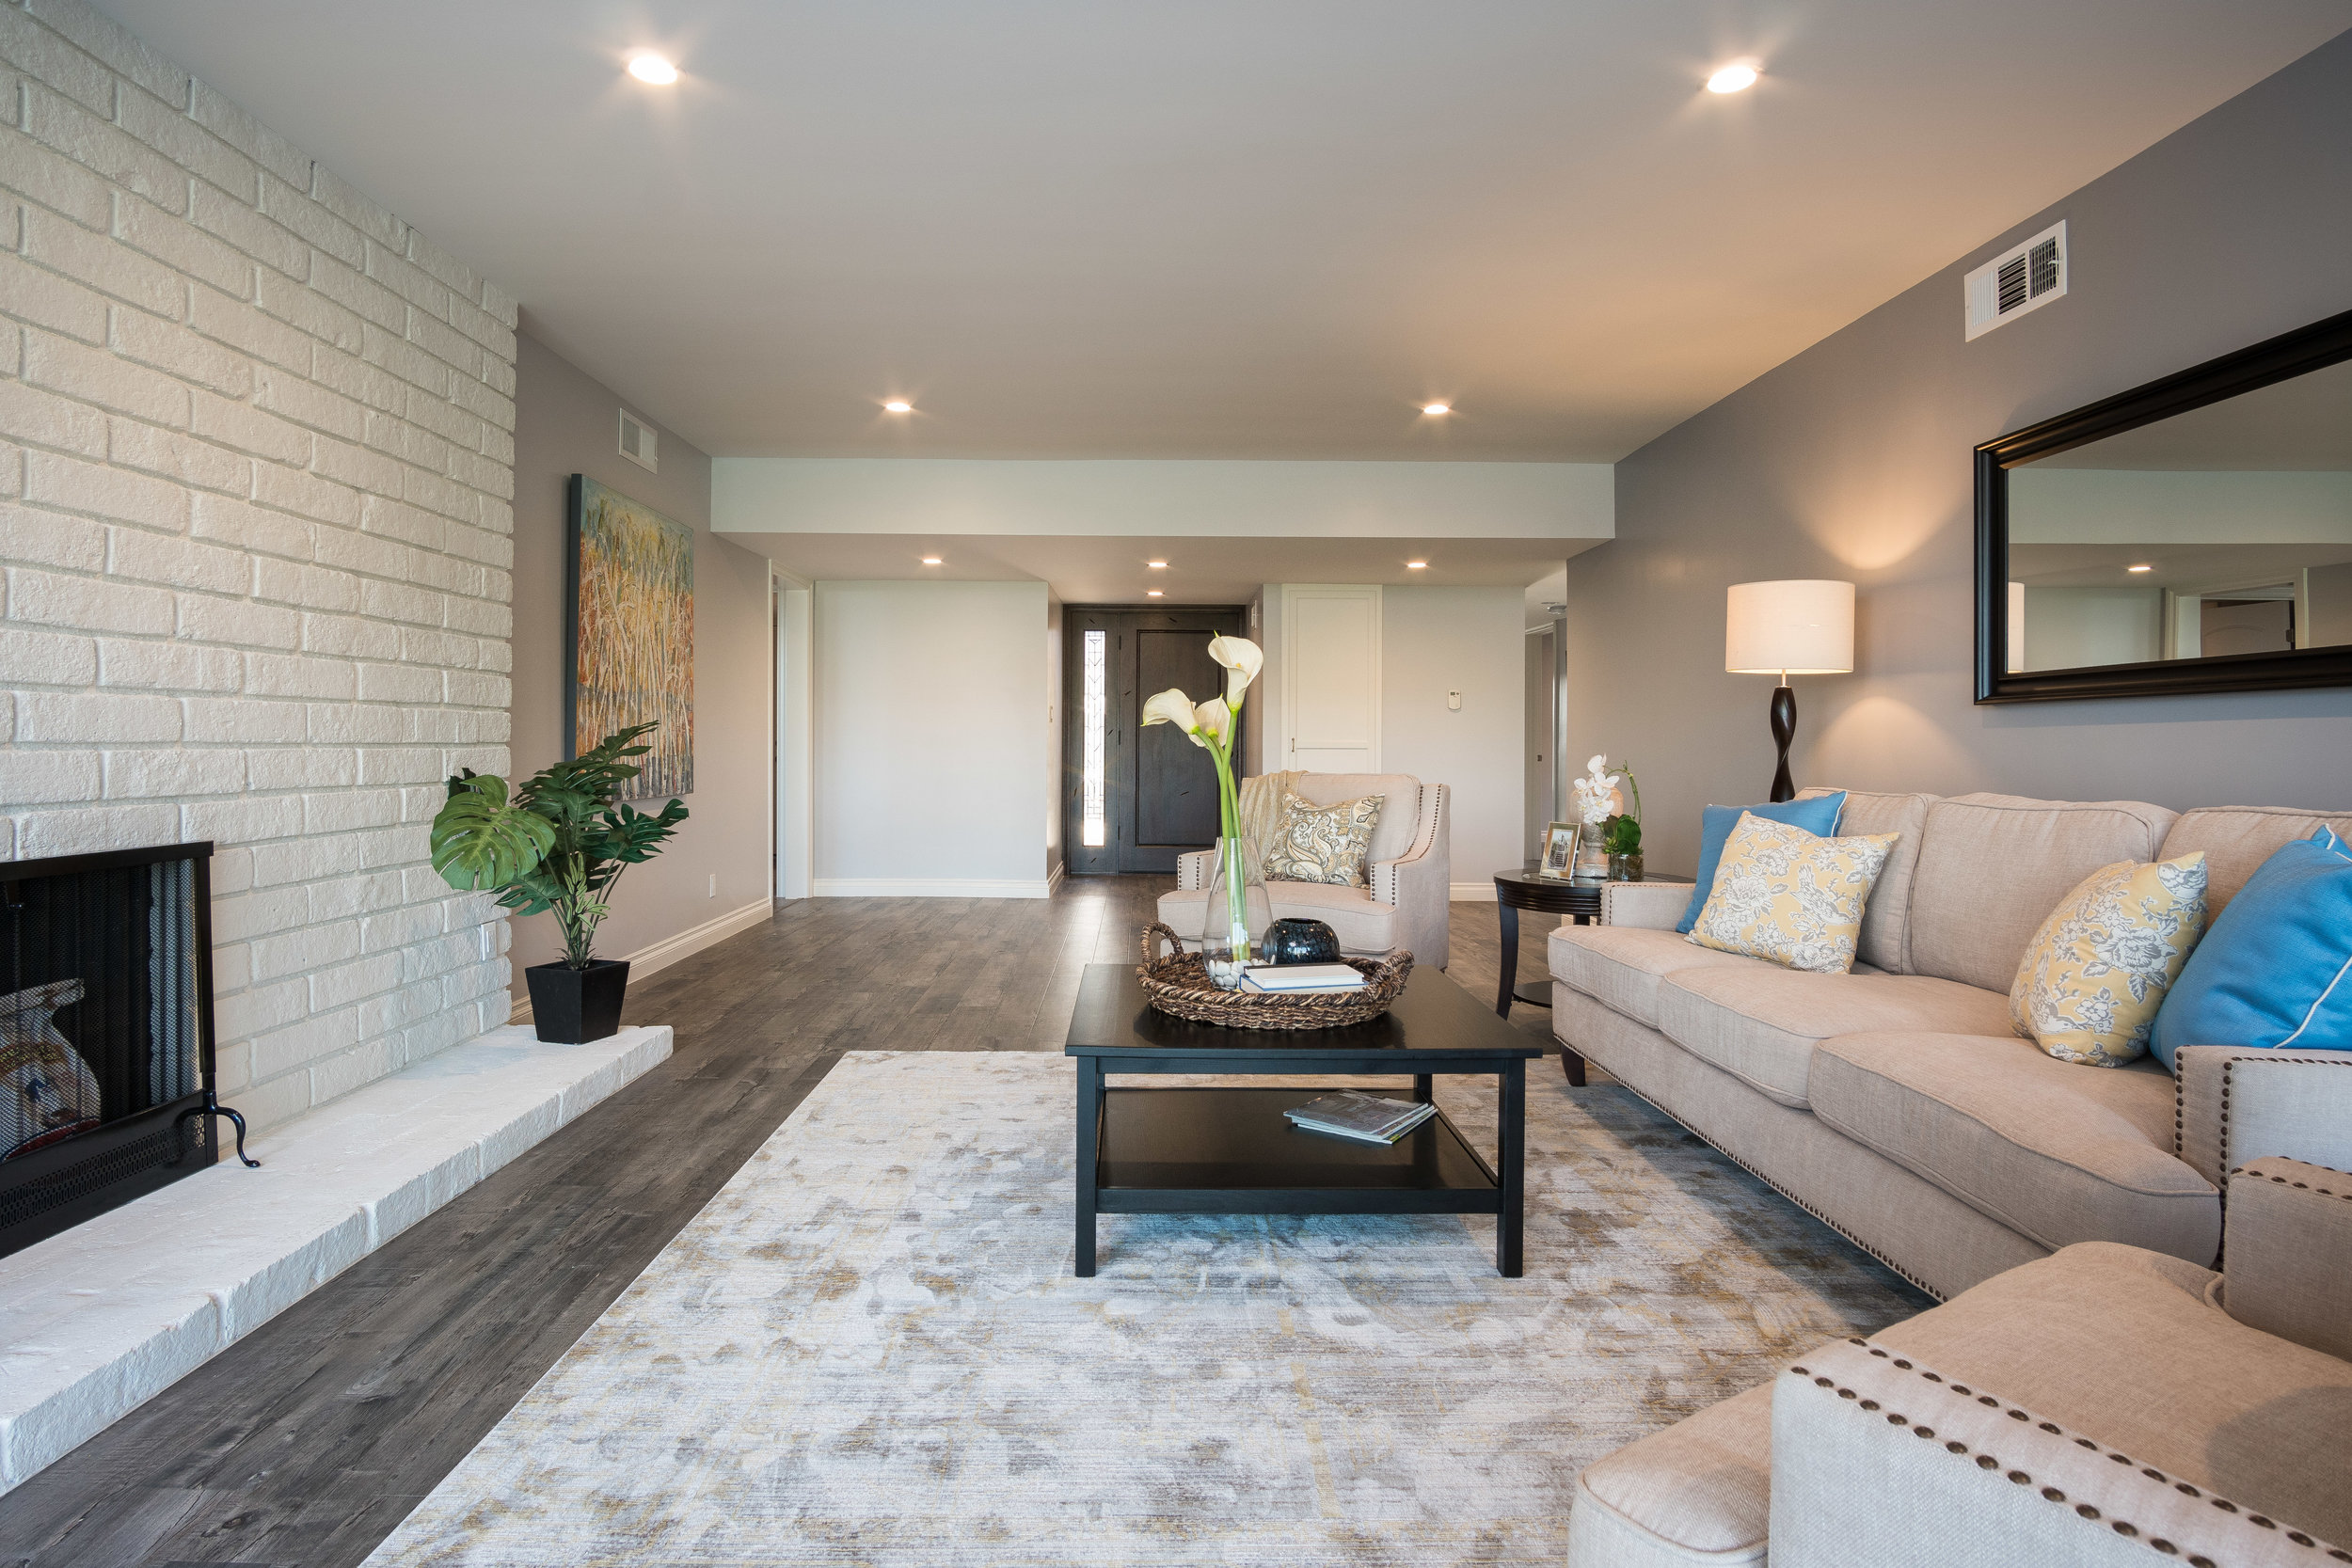 Delivered photo of the entryway and living room ©Ryan Carr - Legacy Listing Photography - 2017